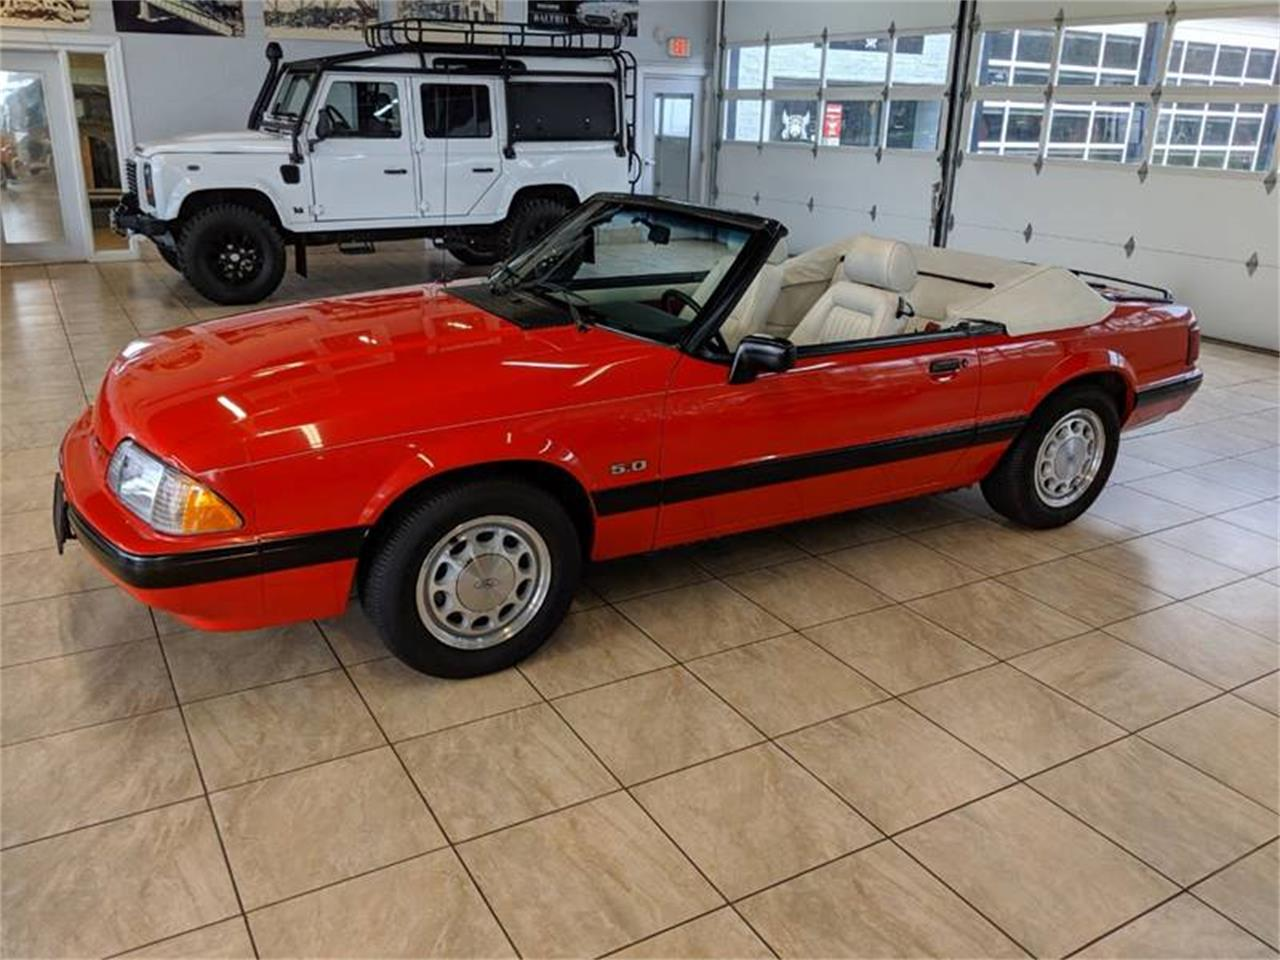 Large Picture of 1989 Mustang located in St. Charles Illinois - $17,900.00 - Q2R9